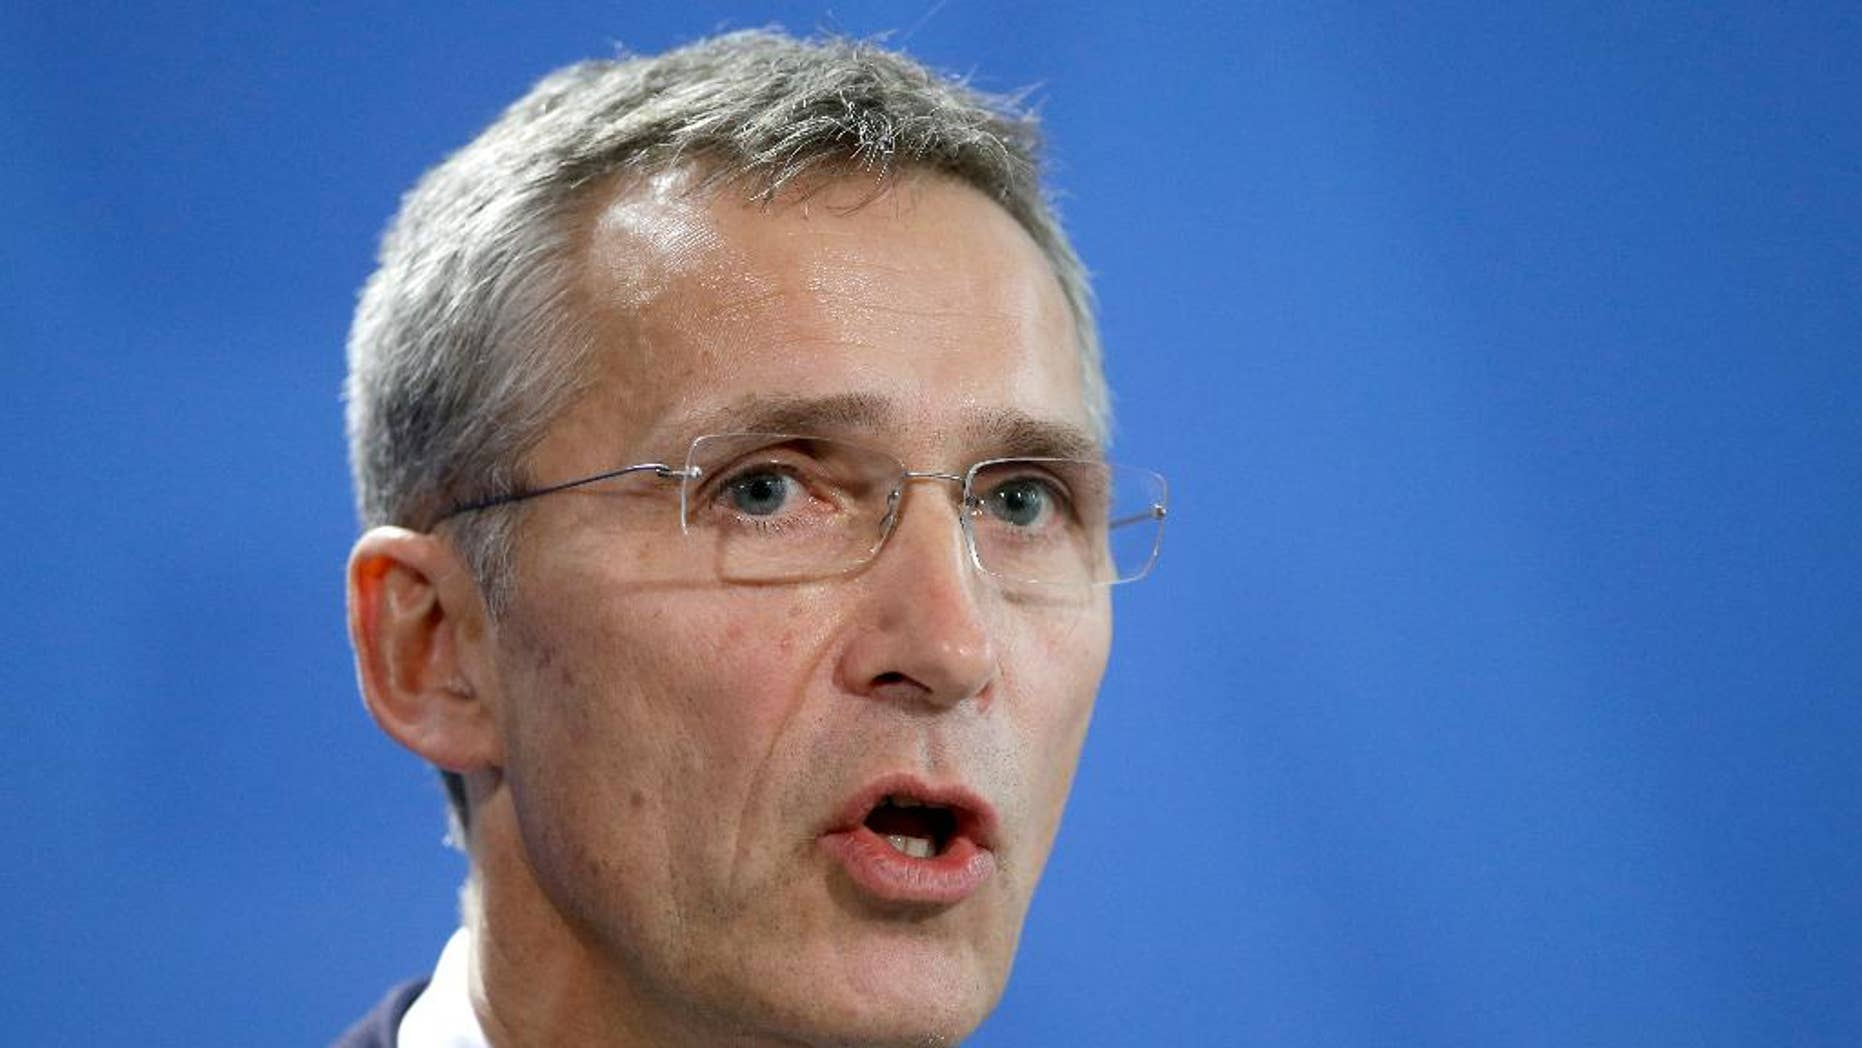 NATO Secretary General Jens Stoltenberg speaks during a joint press conference as part of a meeting with German Chancellor Angela Merkel at the chancellery in Berlin, Germany, Wednesday, Jan. 14, 2015. (AP Photo/Michael Sohn)